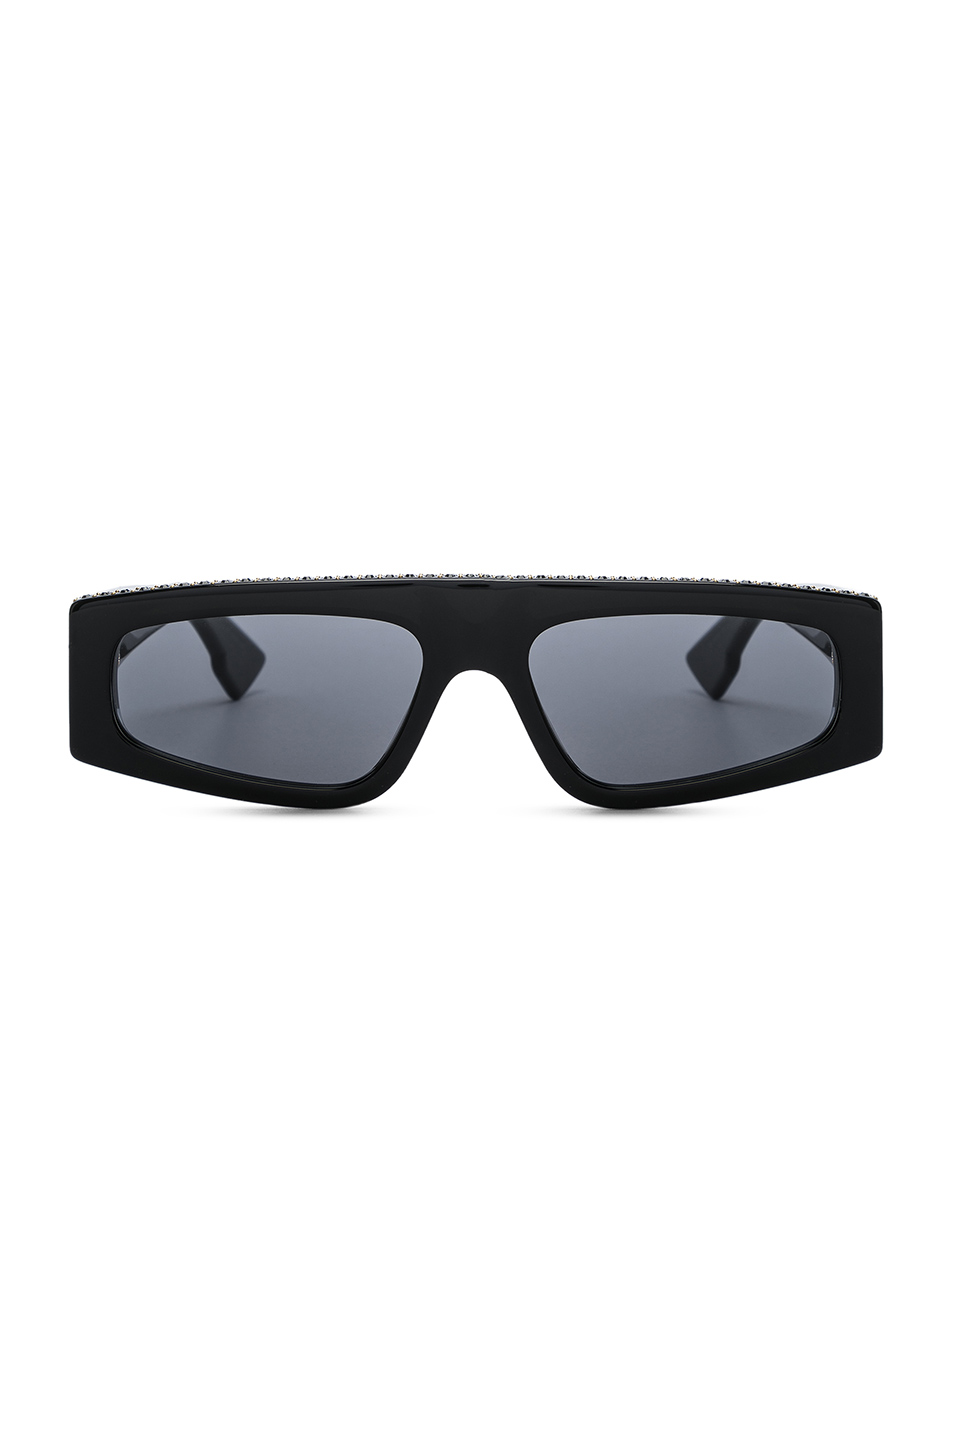 f05f68a6e896 Dior Power Sunglasses  Dior Power Sunglasses ...